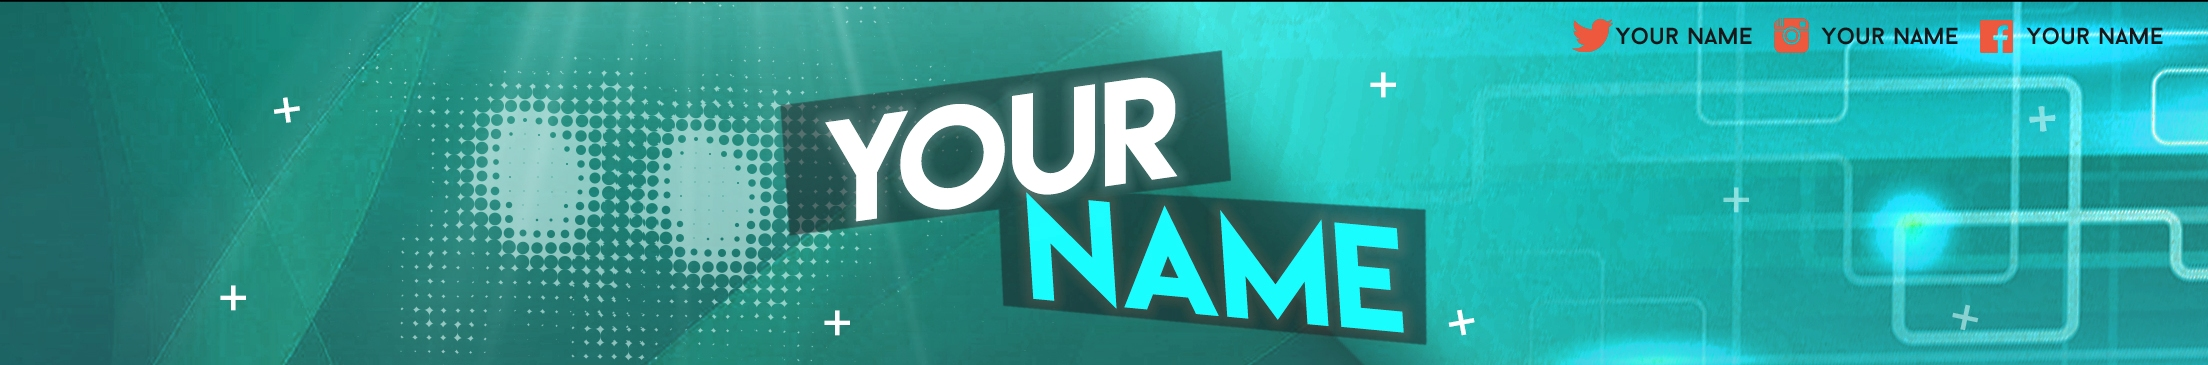 2048x1152 channel art, free youtube banner, youtube banner background, youtube banner template, youtube banner template psd 2016, youtube channel art 2560x1440, youtube channel art gaming, youtube channel art psd 2017, youtube channel art size, youtube channel art template, youtube channel art template download, youtube channel art template maker, youtube channel art template psd, youtube channel art template psd 2017, youtube channel art template size, youtube channel banner template psd free, youtube channel icon maker, youtube gaming channel art template psd,